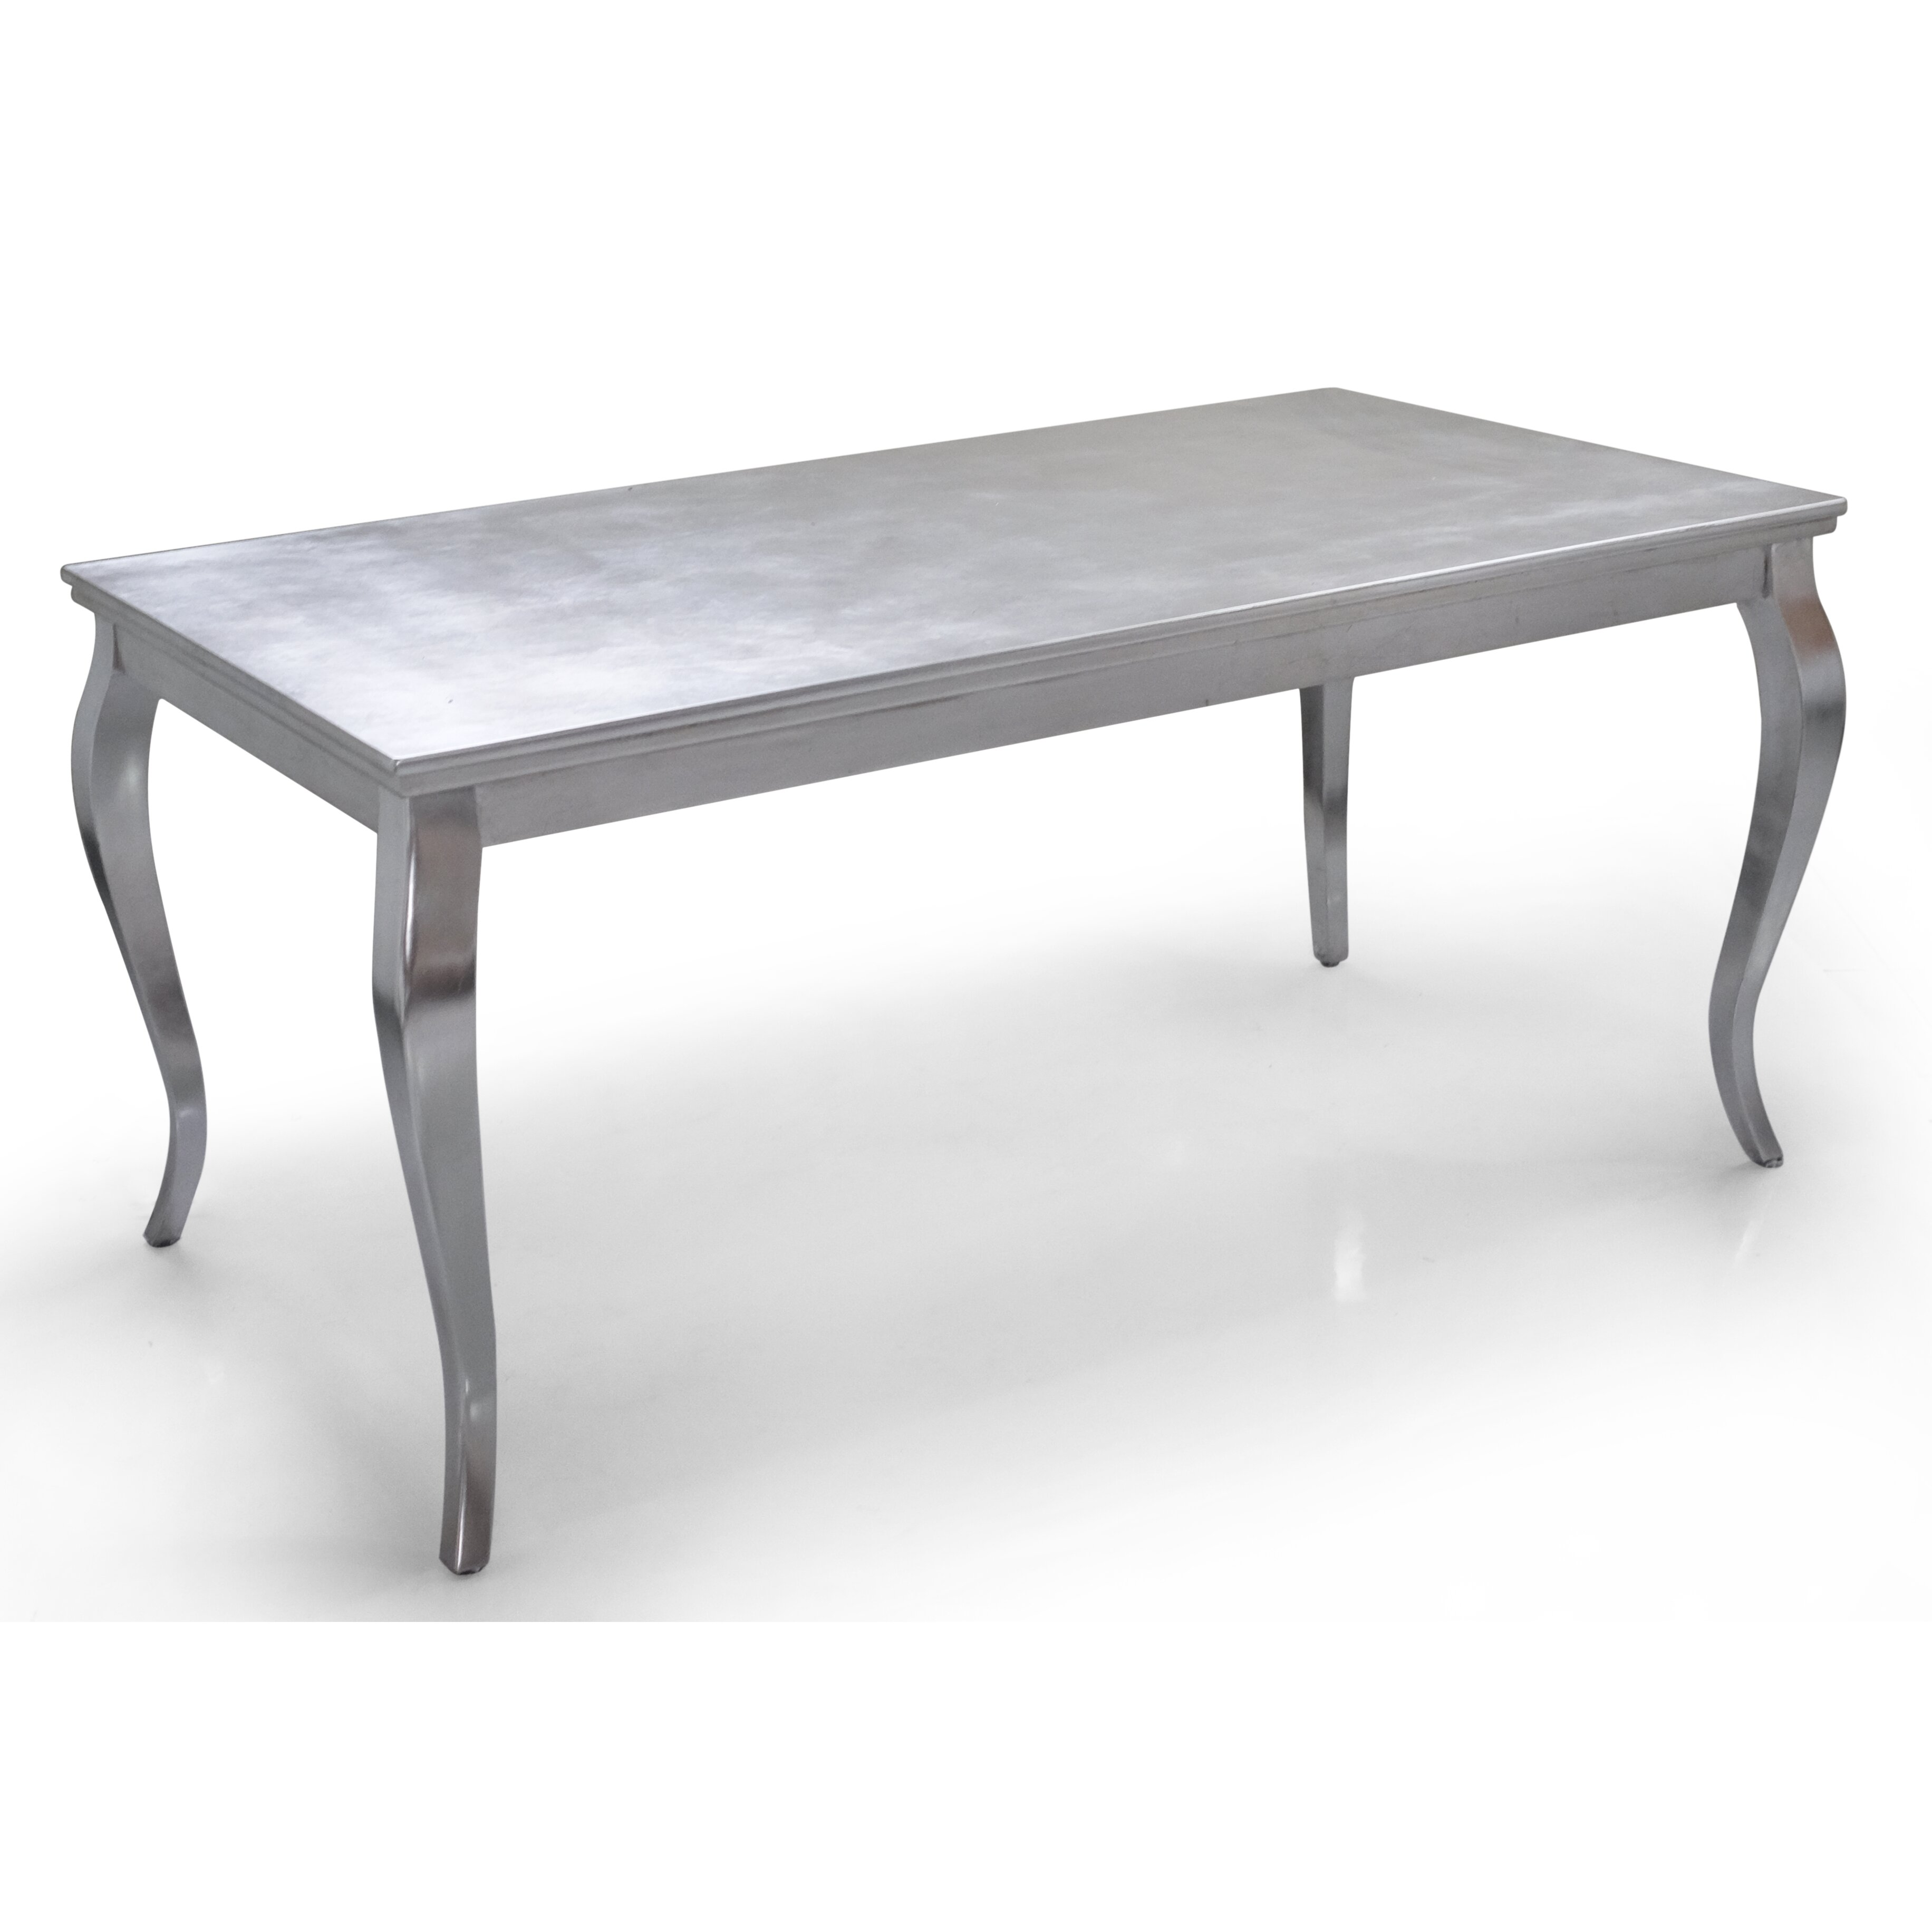 Charlesworthy orianne dining table wayfair uk for Wayfair dining table